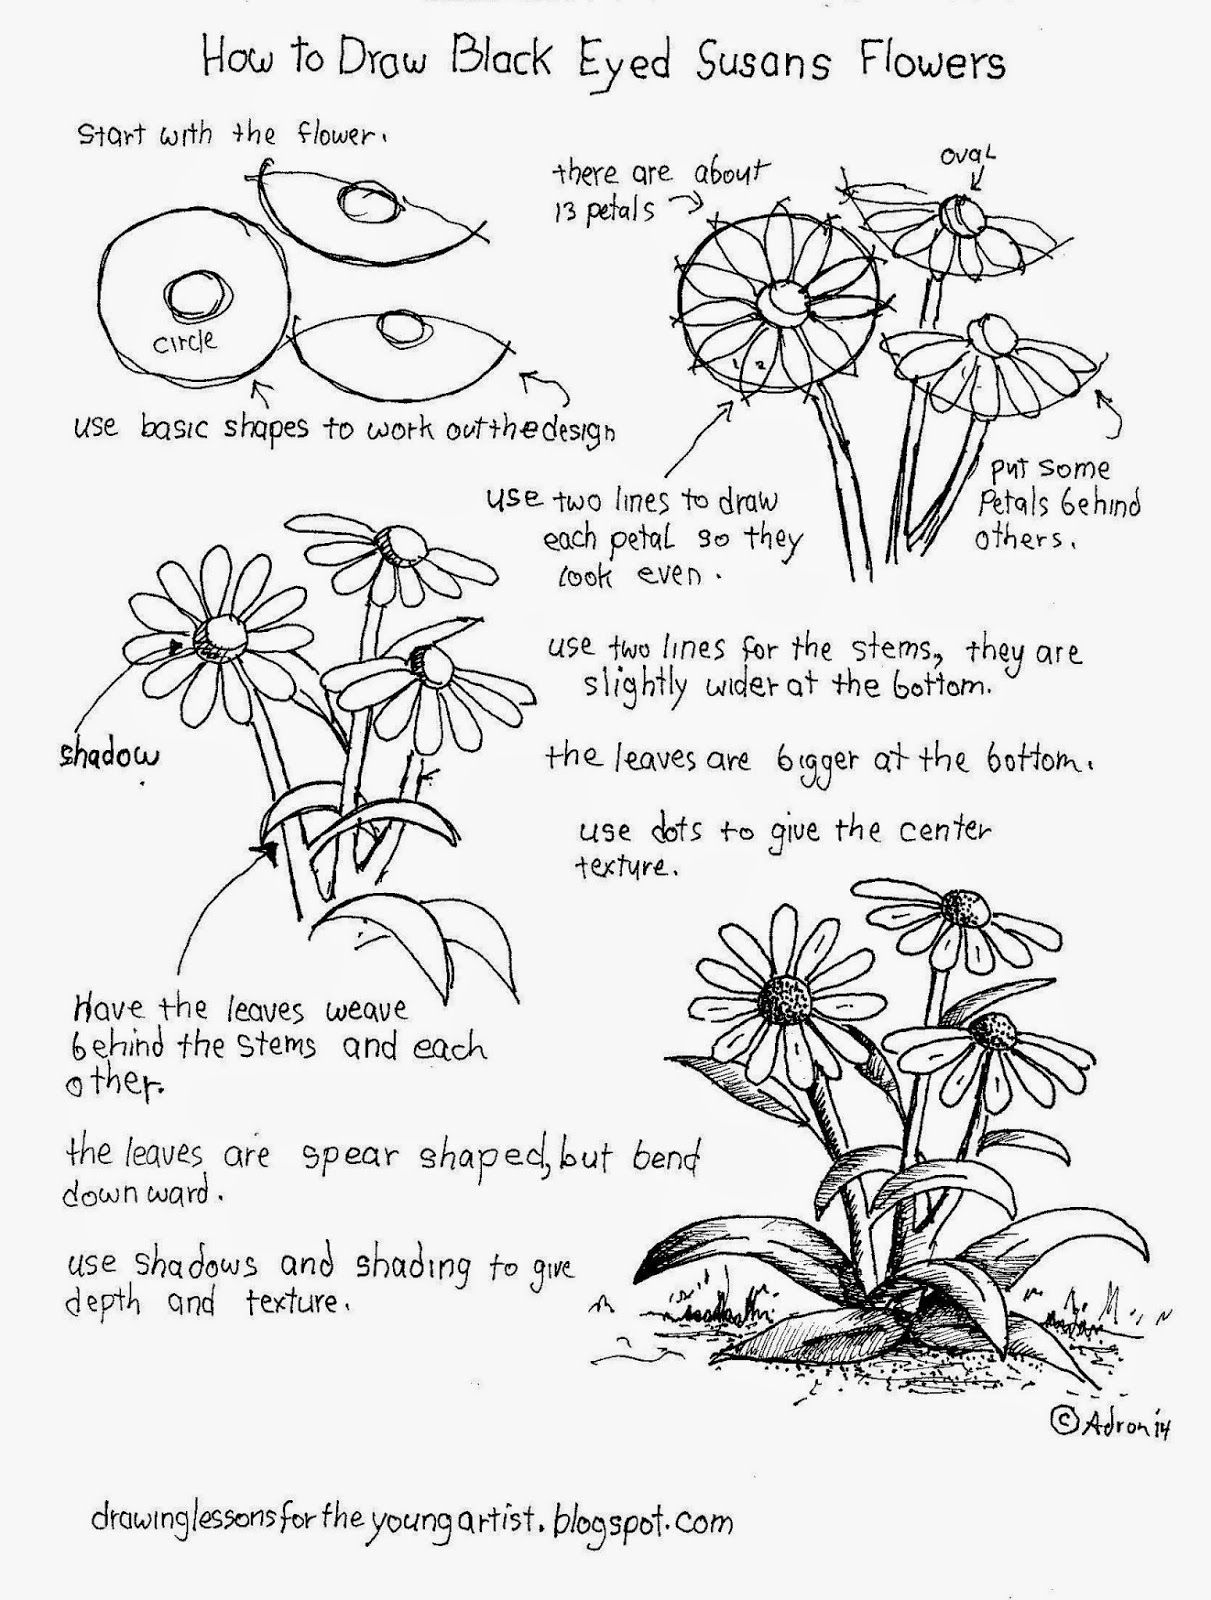 How To Draw Black Eyed Susan Flowers, Free Worksheet (How to